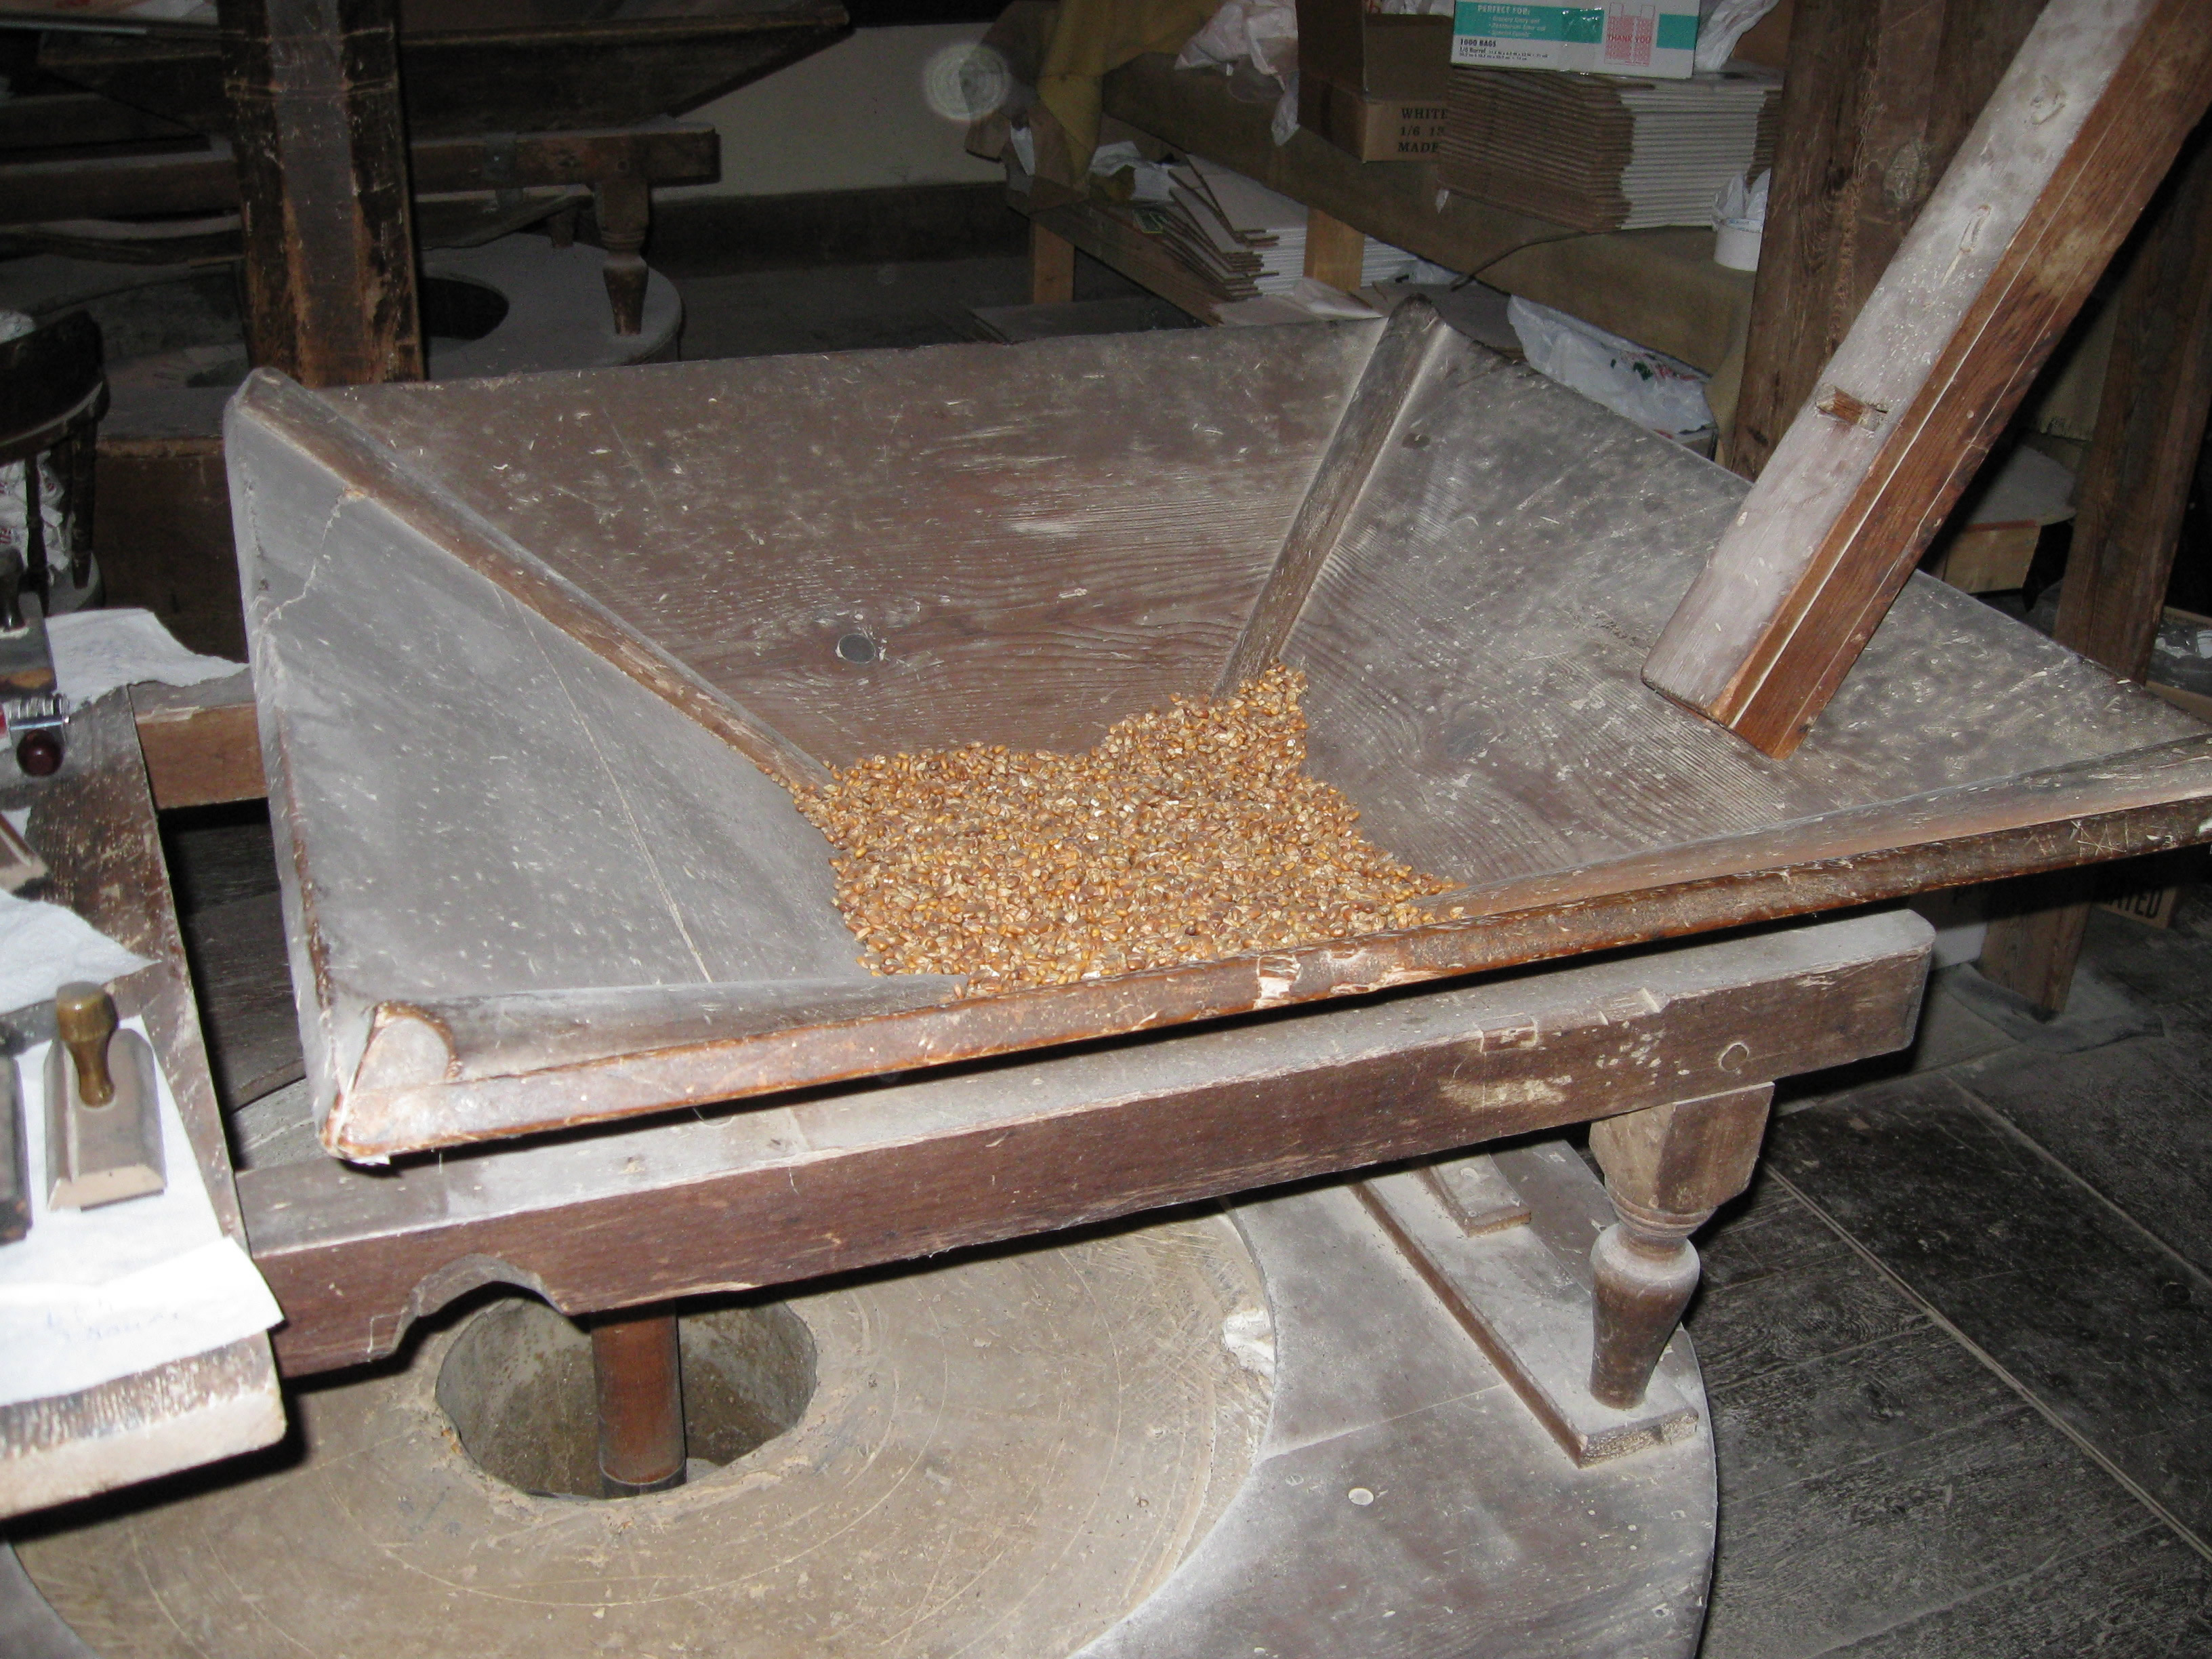 Grain about to the ground at Burnt Cabins Grist Mill